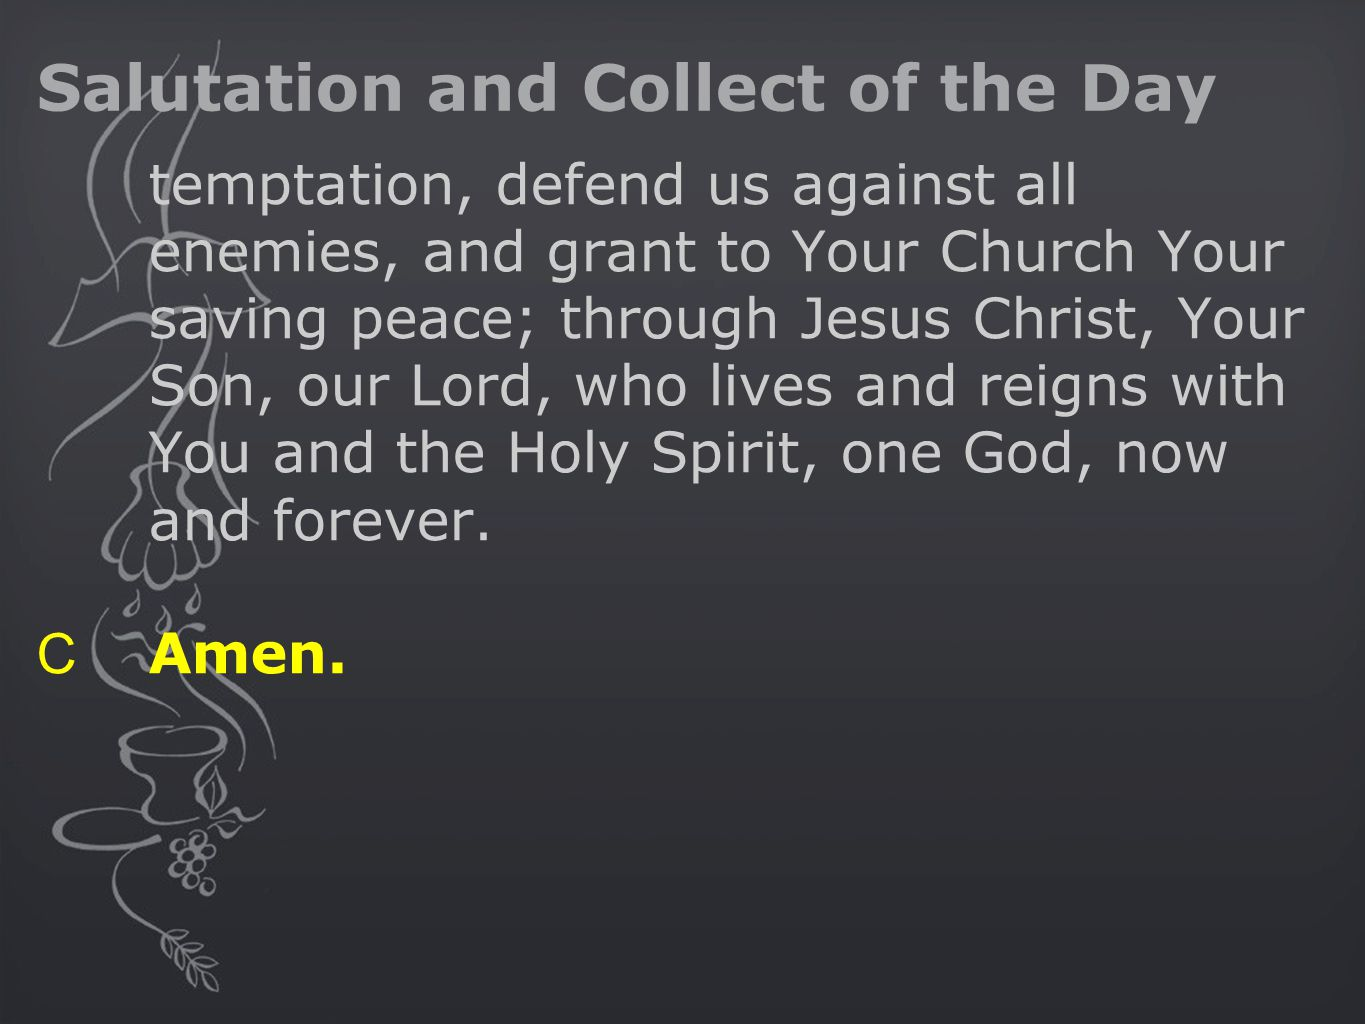 Salutation and Collect of the Day temptation, defend us against all enemies, and grant to Your Church Your saving peace; through Jesus Christ, Your So